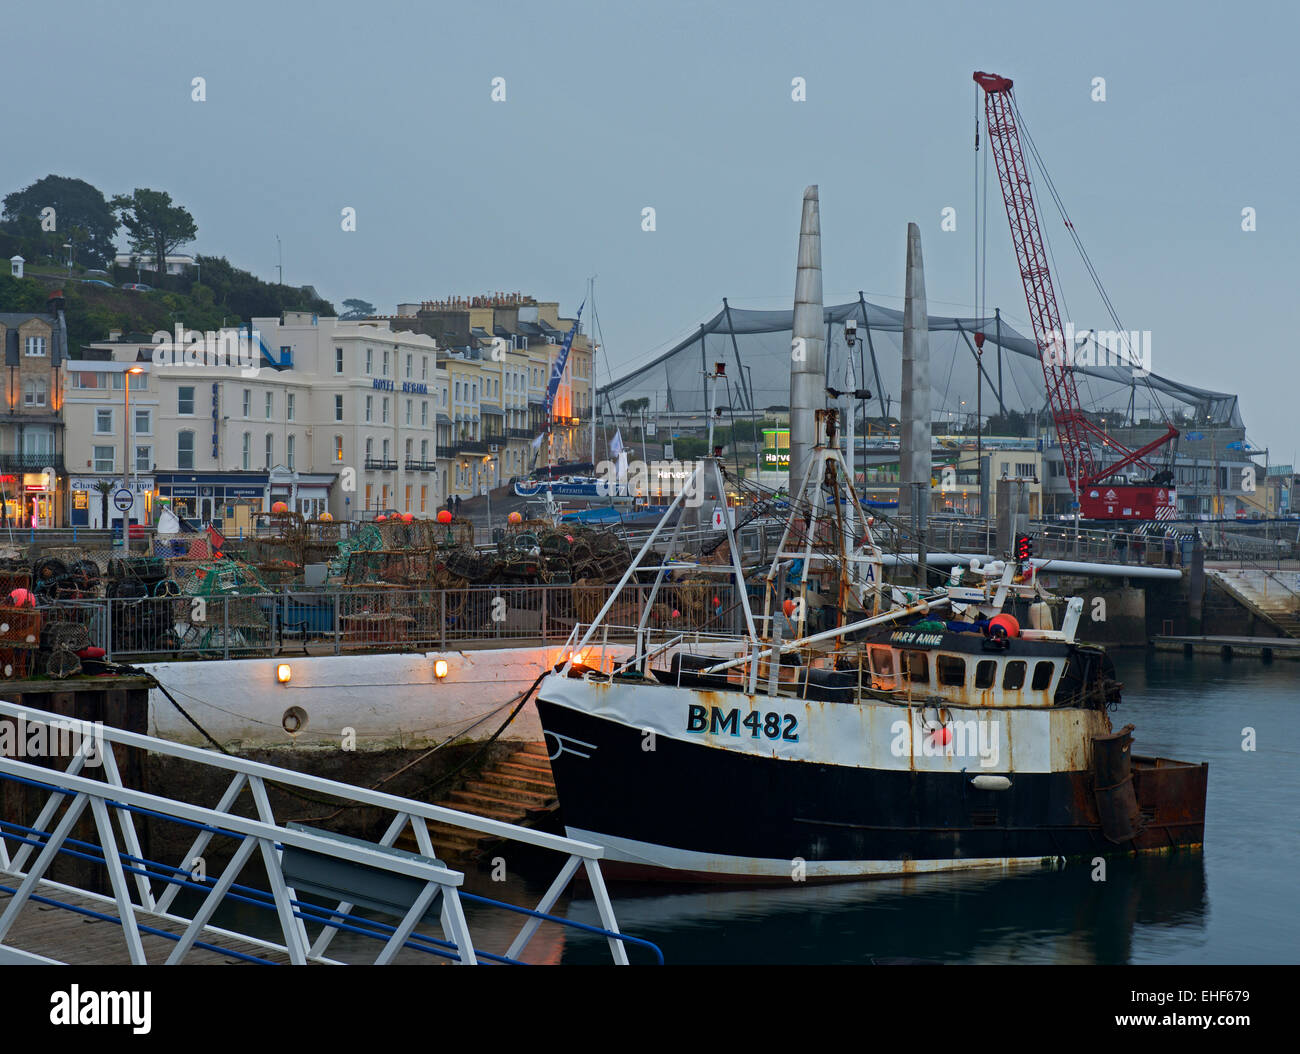 Fishing boat in the harbour, Torquay, Devon, England UK Stock Photo